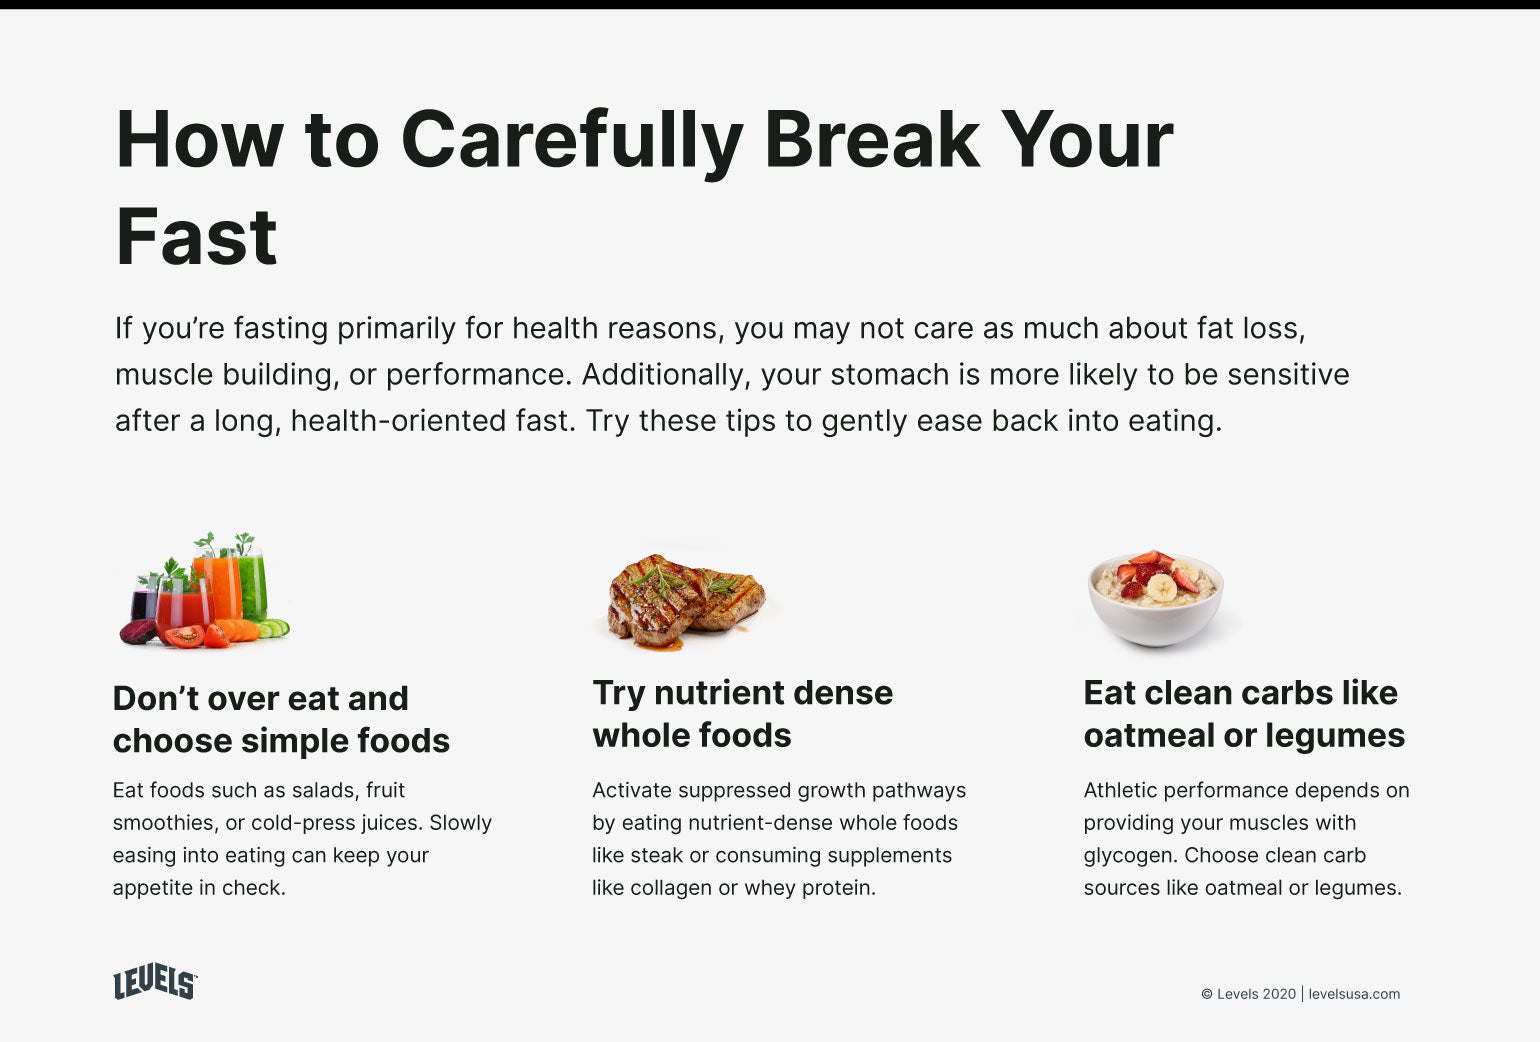 How to Carefully Break Your Fast - Infographic